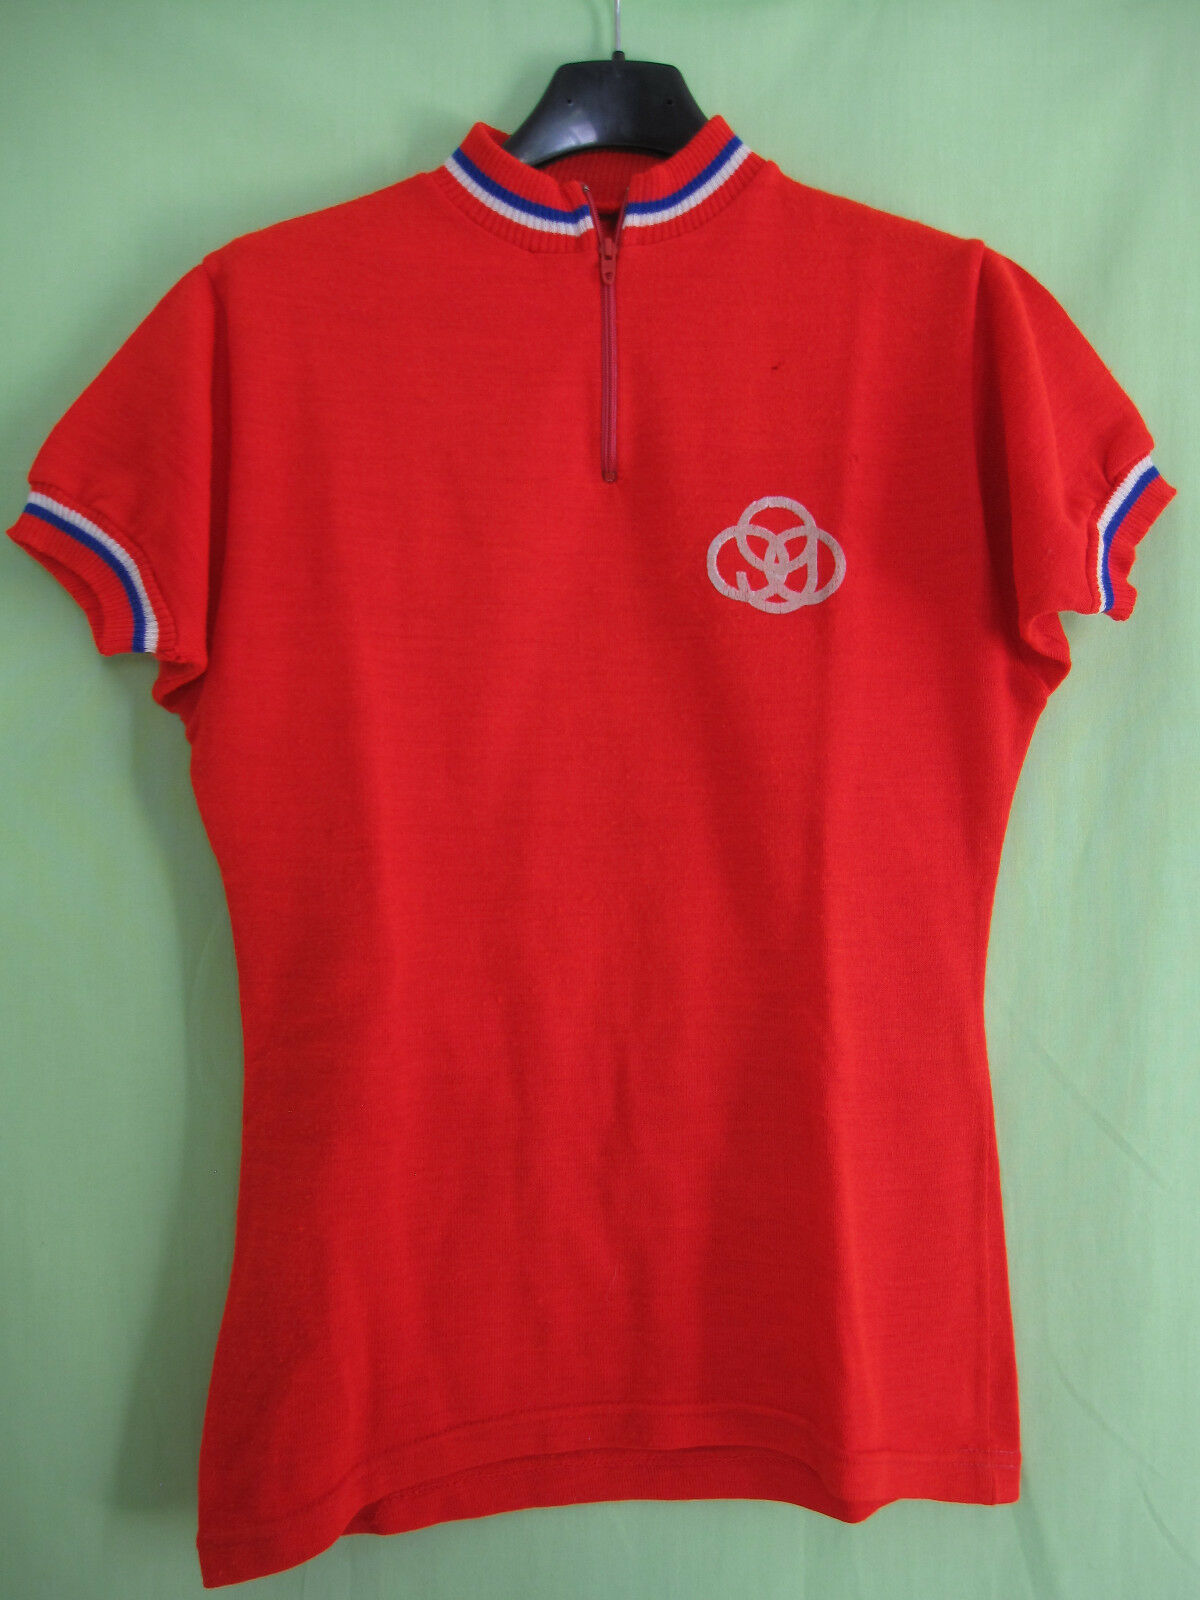 Maillot Cycliste vintage GITANE red Acrylique Velo 70'S jersey - S